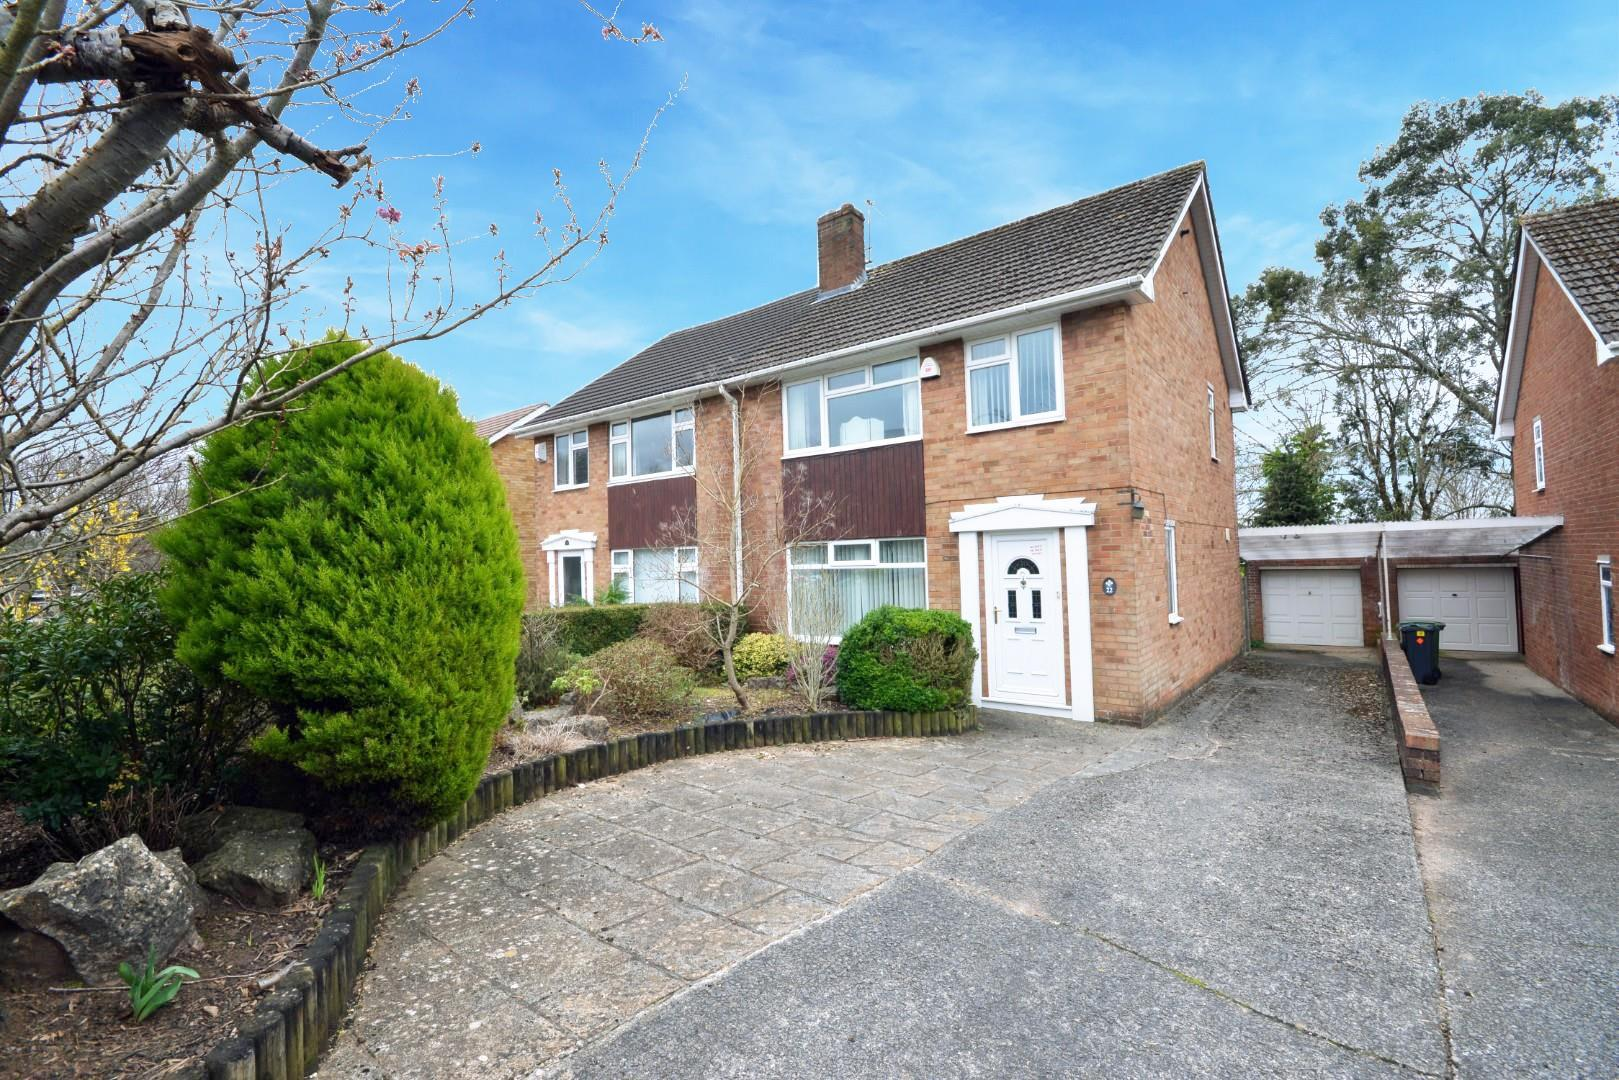 3 bed semi-detached house for sale in Carnegie Drive, Cardiff - Property Image 1